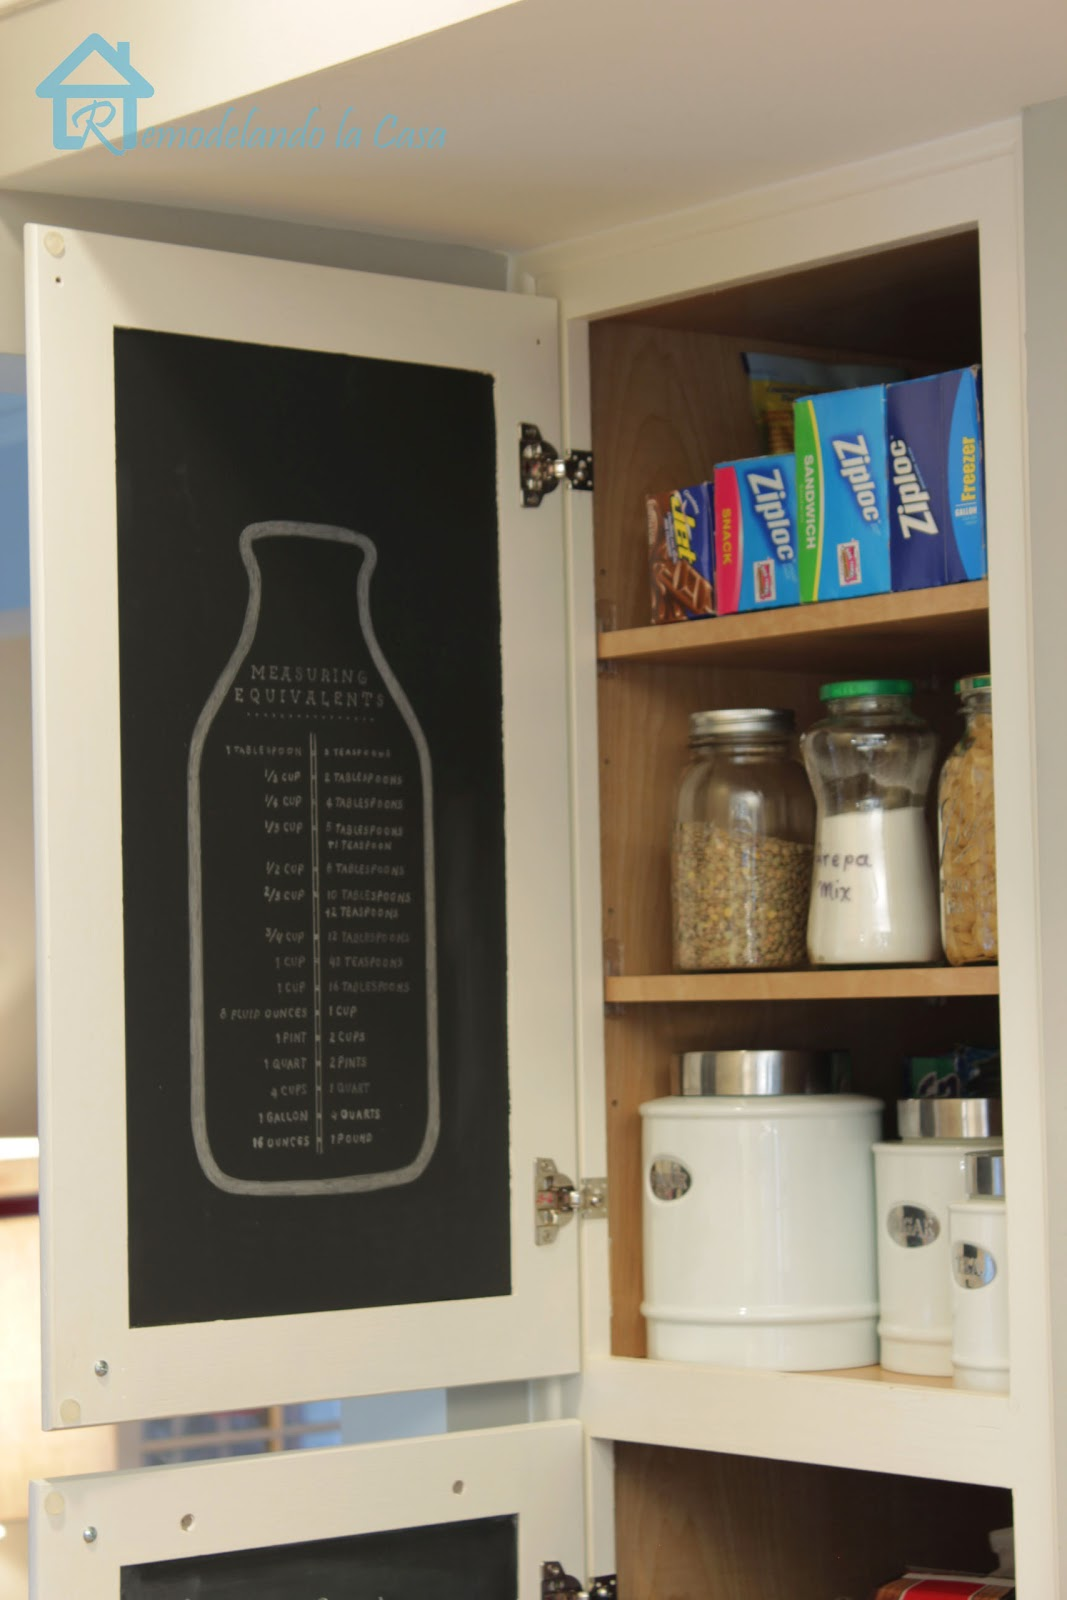 Measuring equivalent on pantry door.